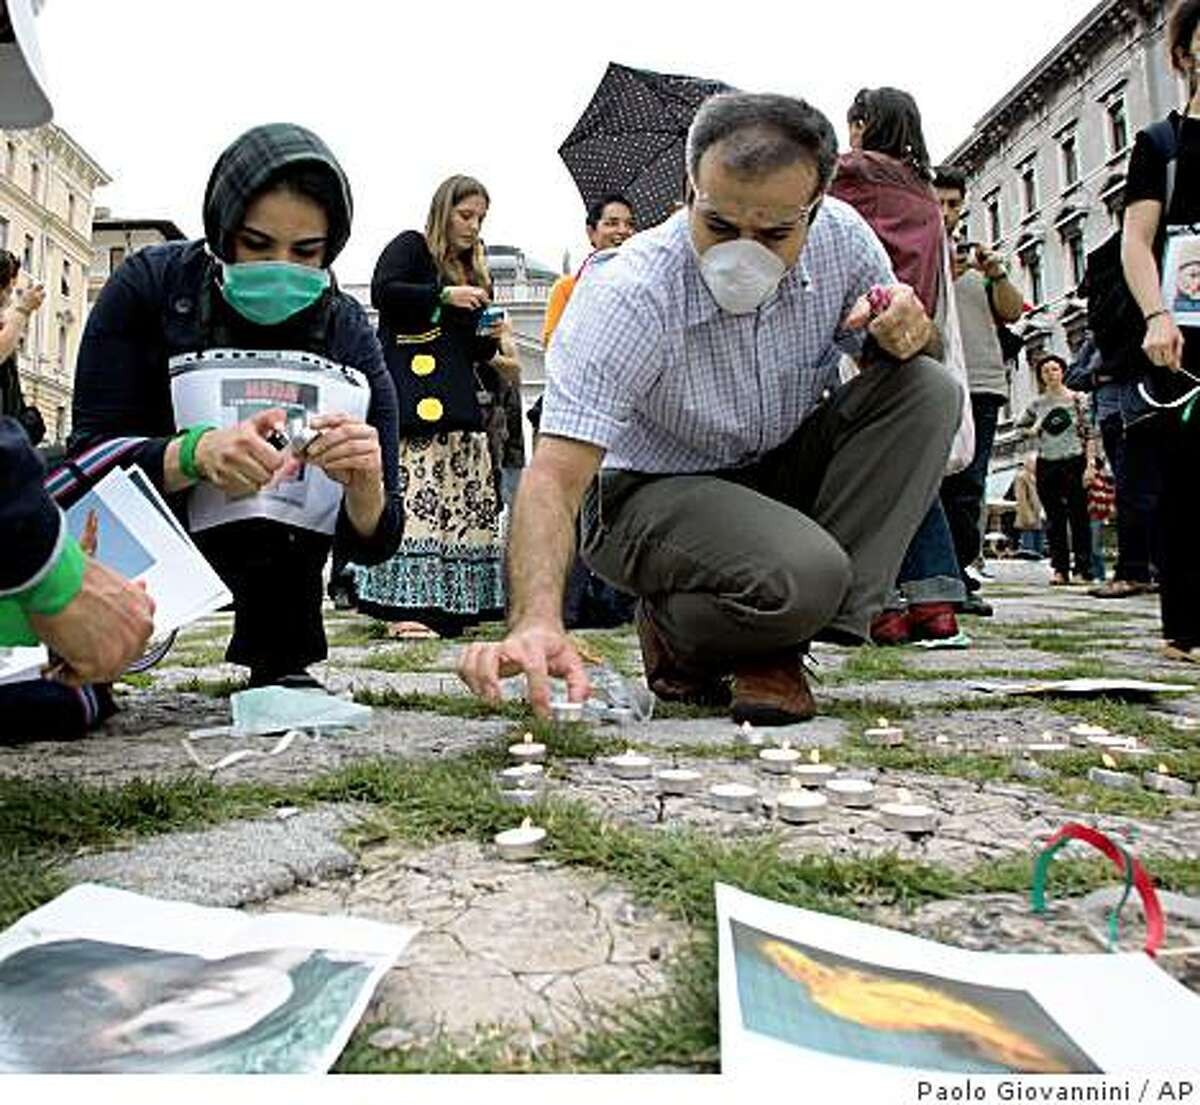 Activists light candles during a demonstration against the violence in Iran, at the G8 foreign ministers' meeting in Trieste, Italy, Thursday, June 25, 2009. Italy hopes foreign ministers of the industrialized Group of Eight meeting Thursday will send Iran a